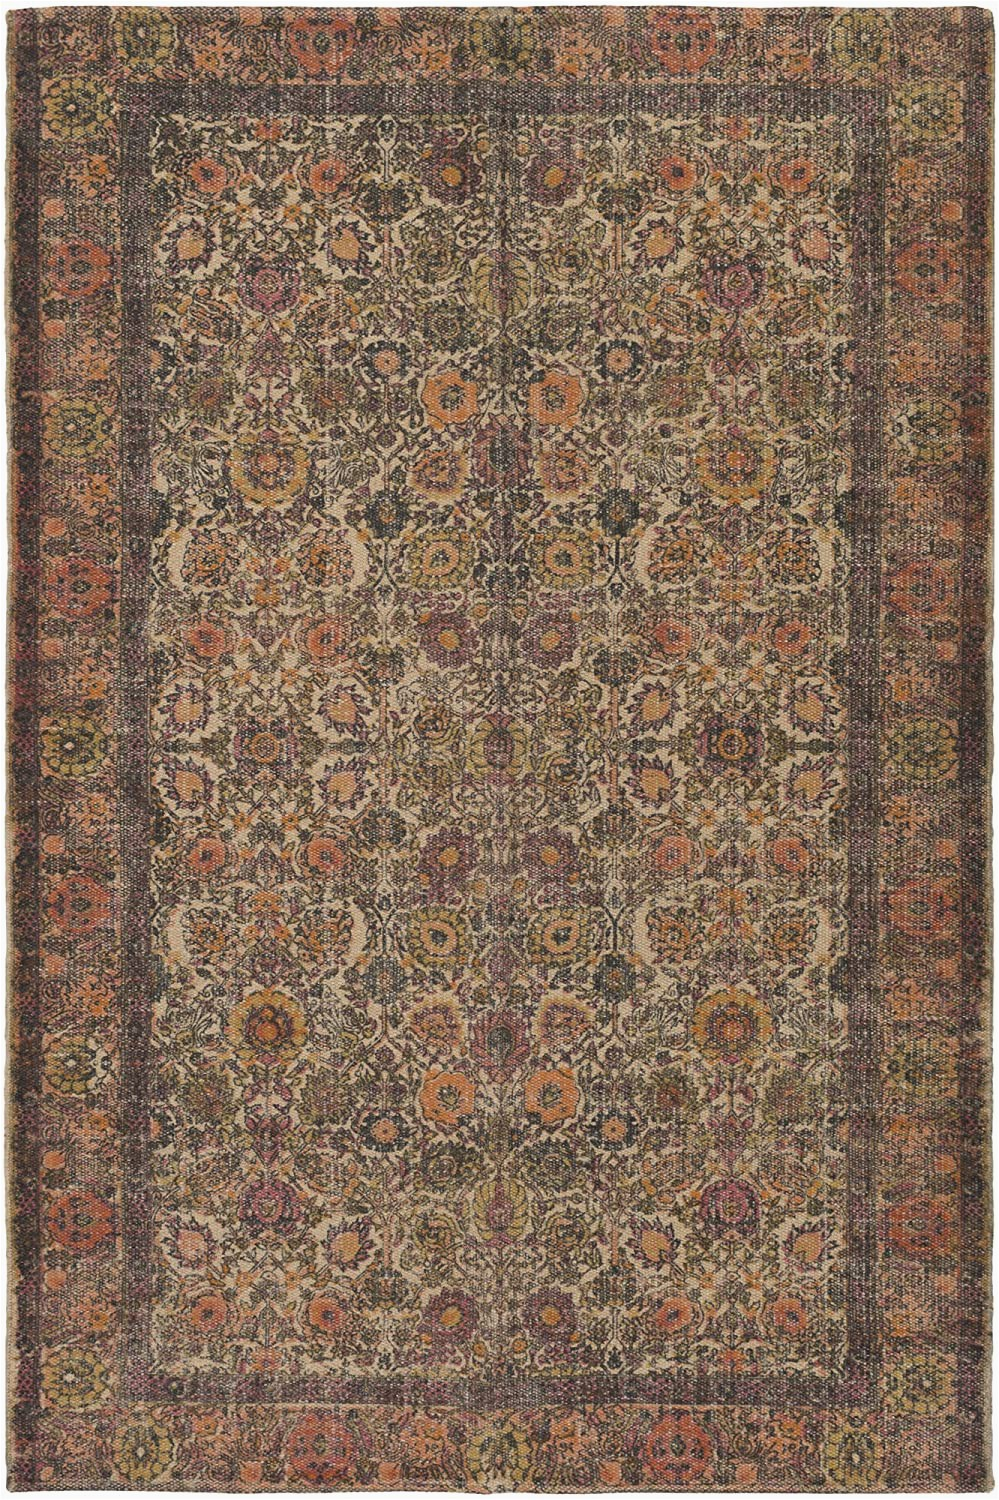 "Burnt orange 5×7 area Rug Amazon Surya Shadi 5 X 7 6"" area Rug Burnt orange"